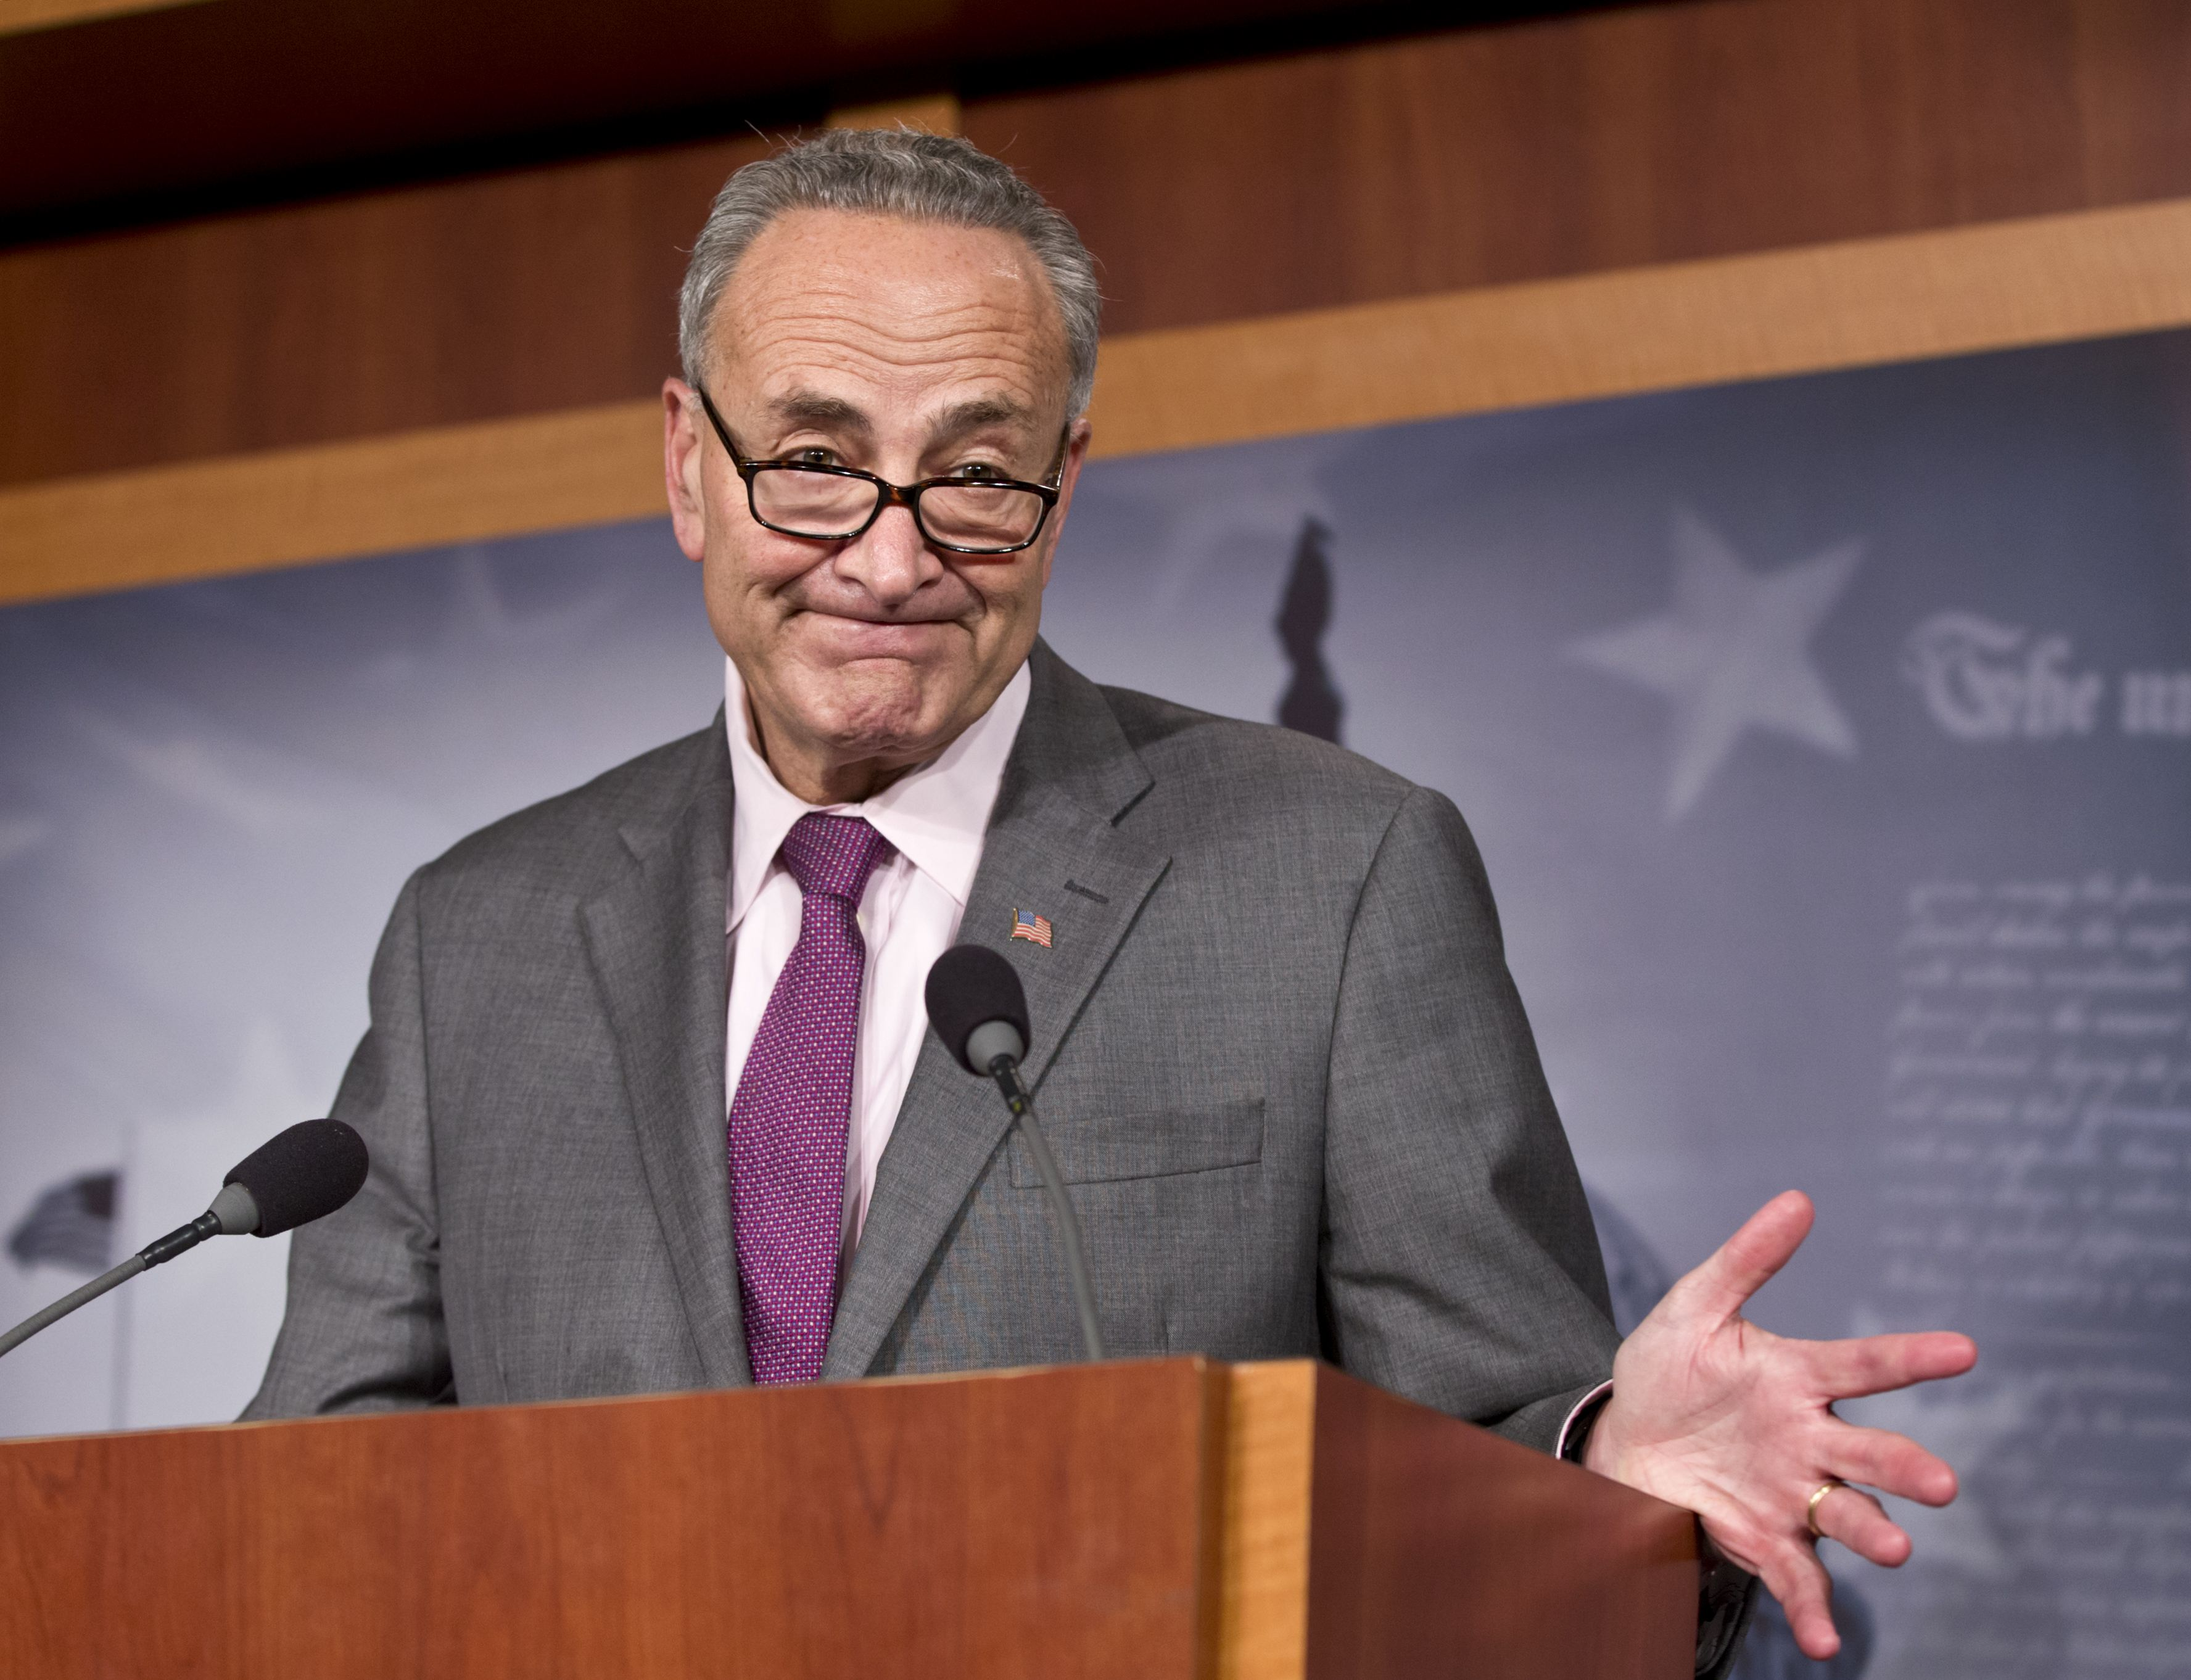 Sen. Schumer fails history, credits Jefferson for Bill of Rights